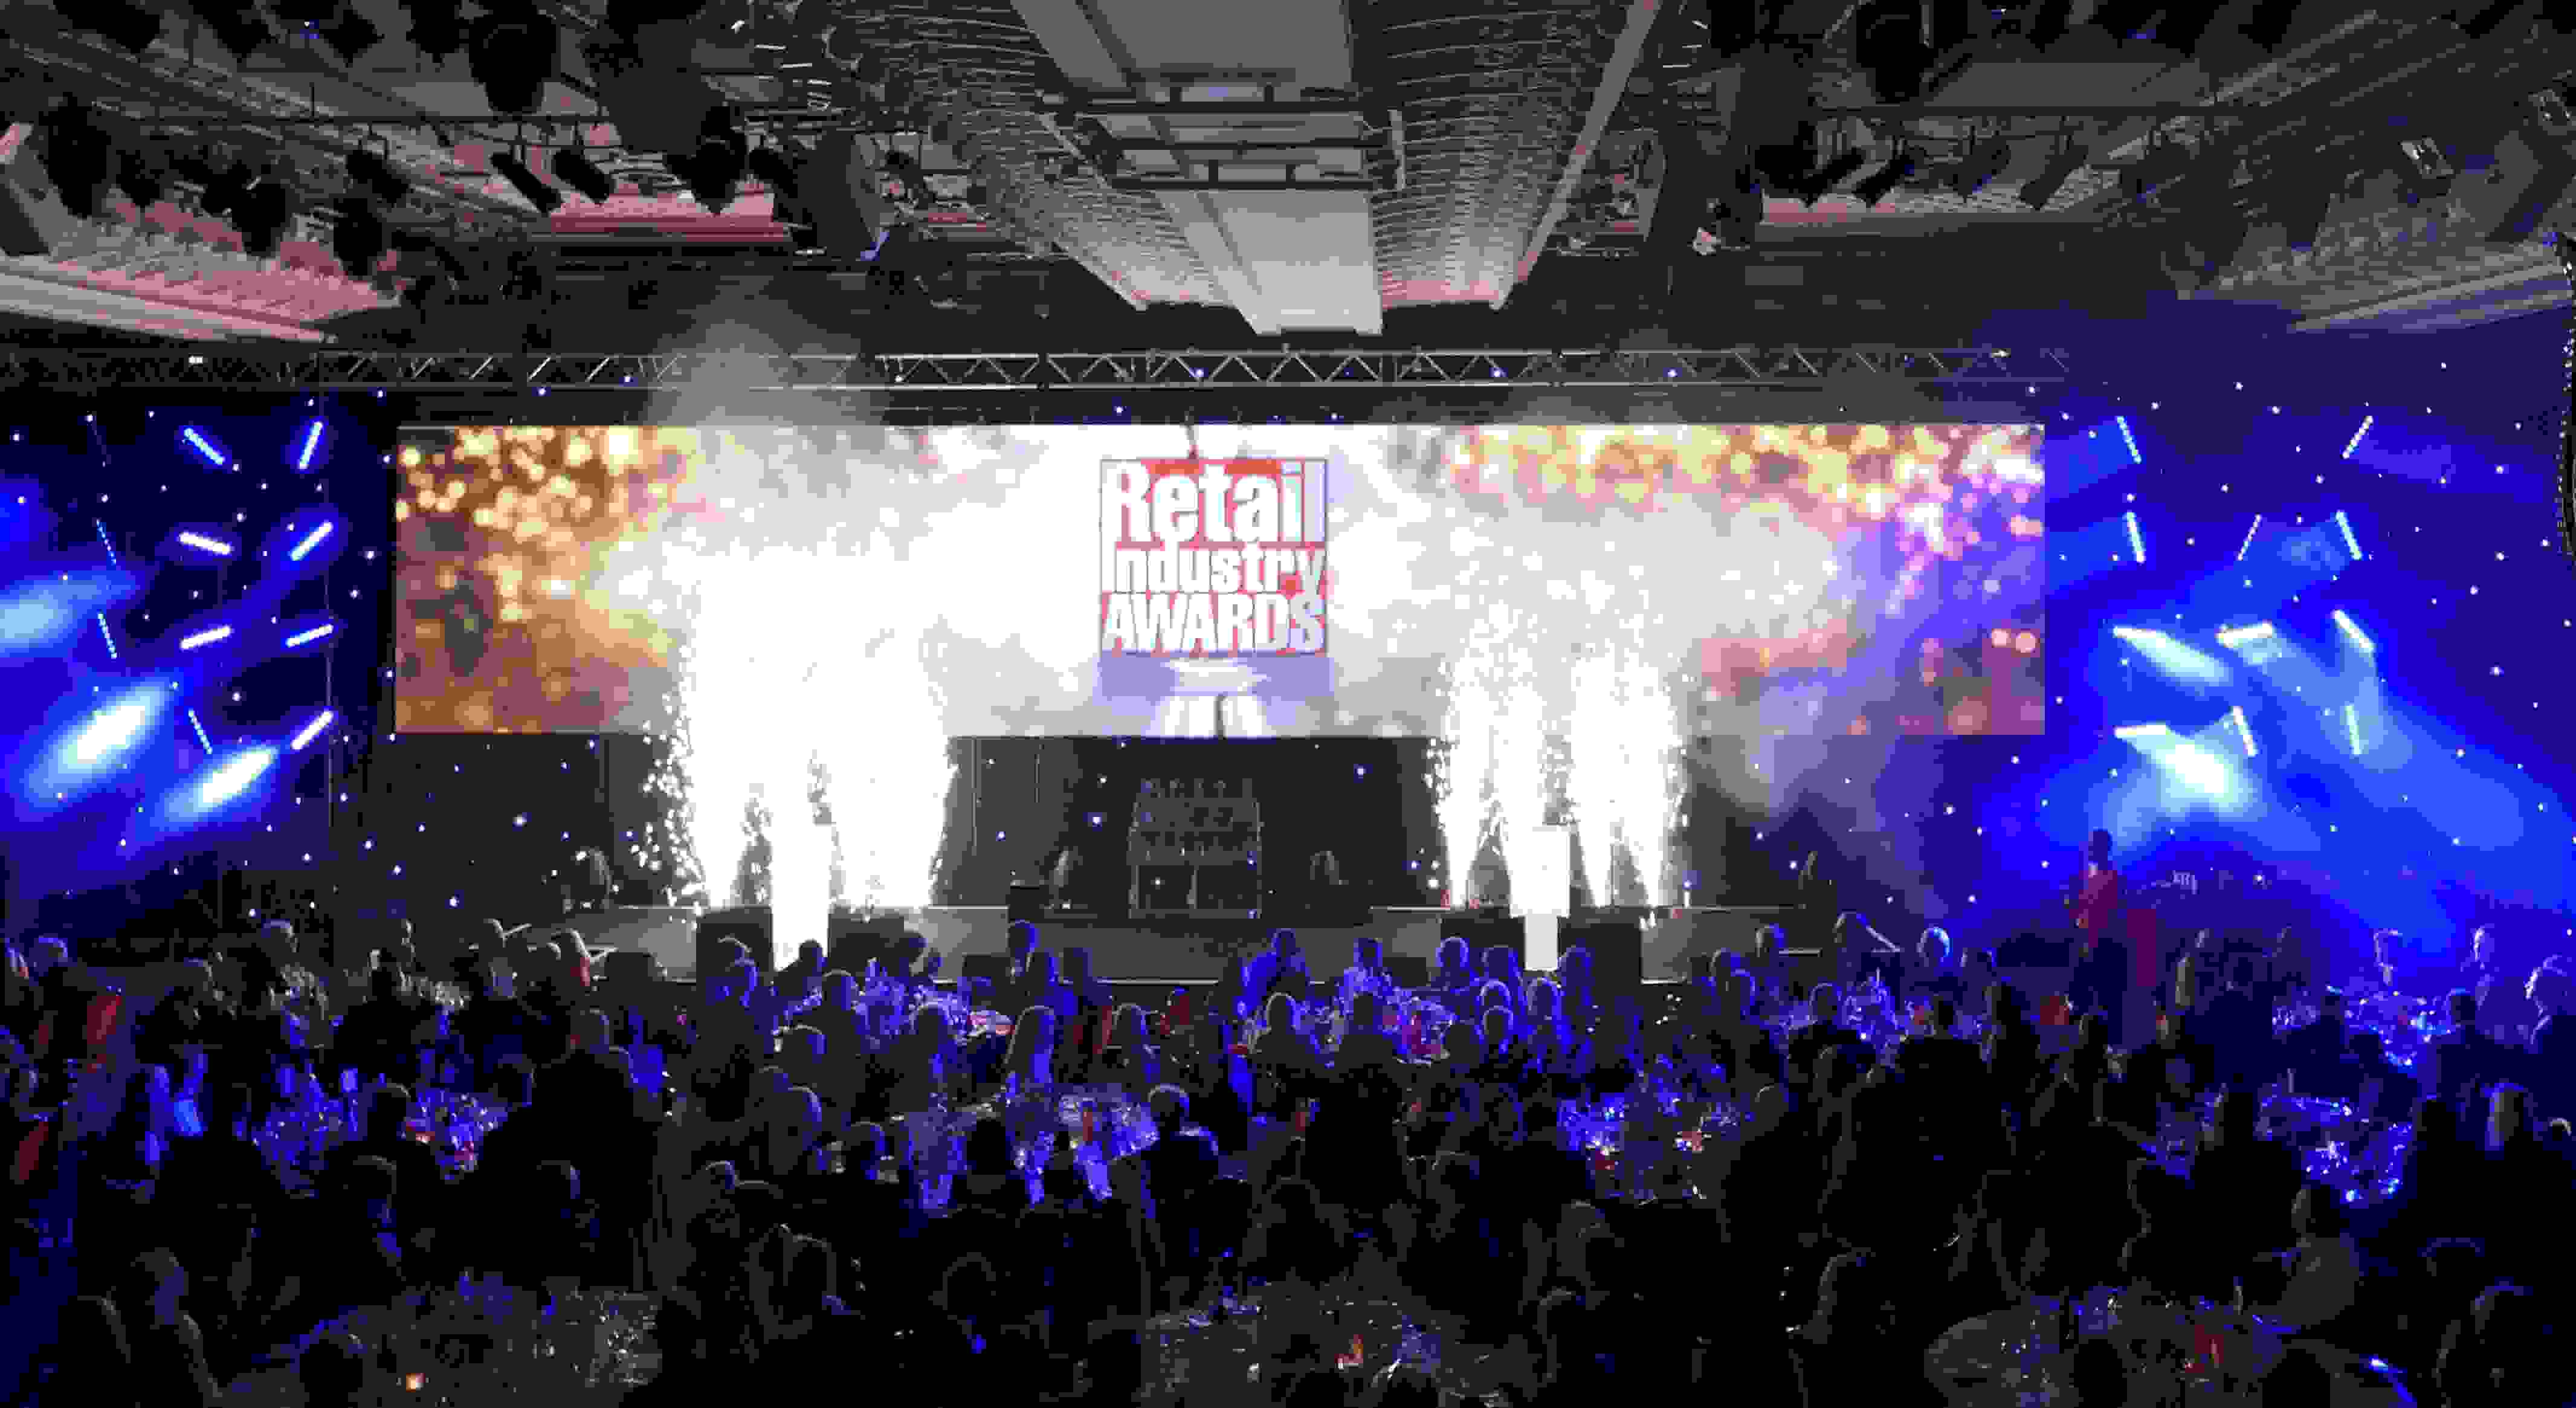 Retail Industry Awards: Good luck to our branches